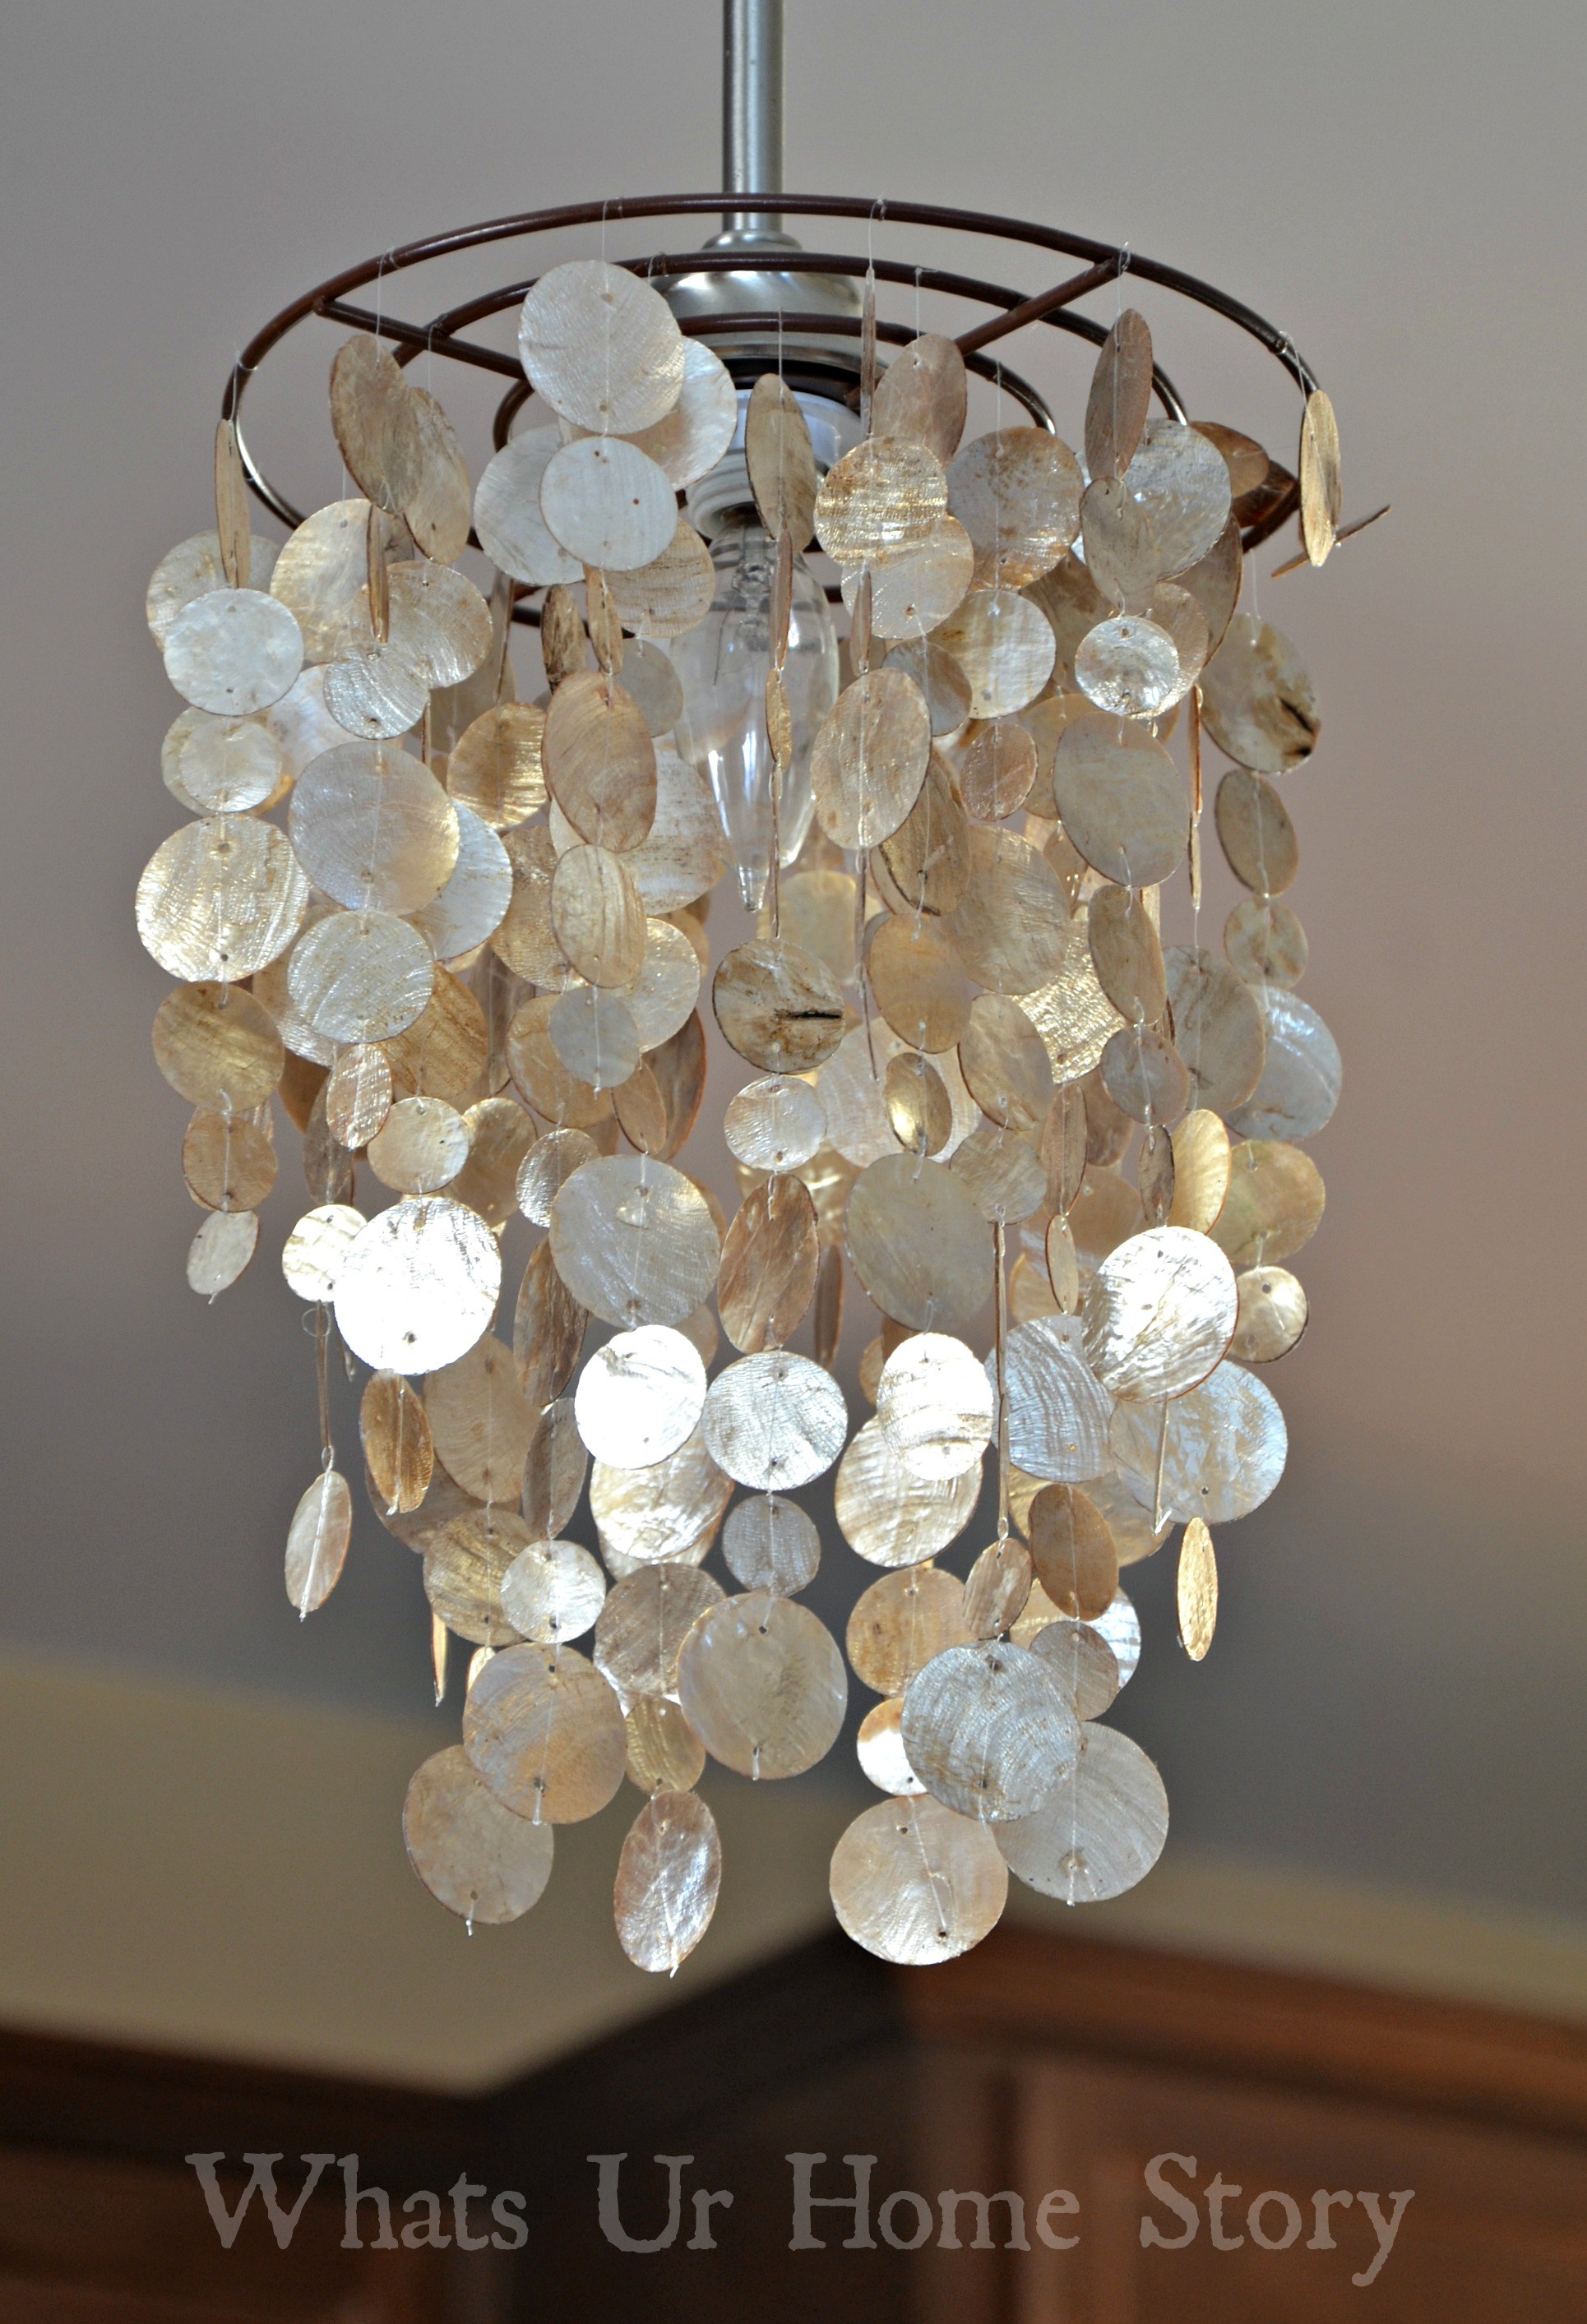 Unique Lighting Design using Capiz Shells for Home Decor Ideas: Alluring Capiz Shells Wall Mirror Gold With Light Capiz Shells For Your Home Lighting Ideas